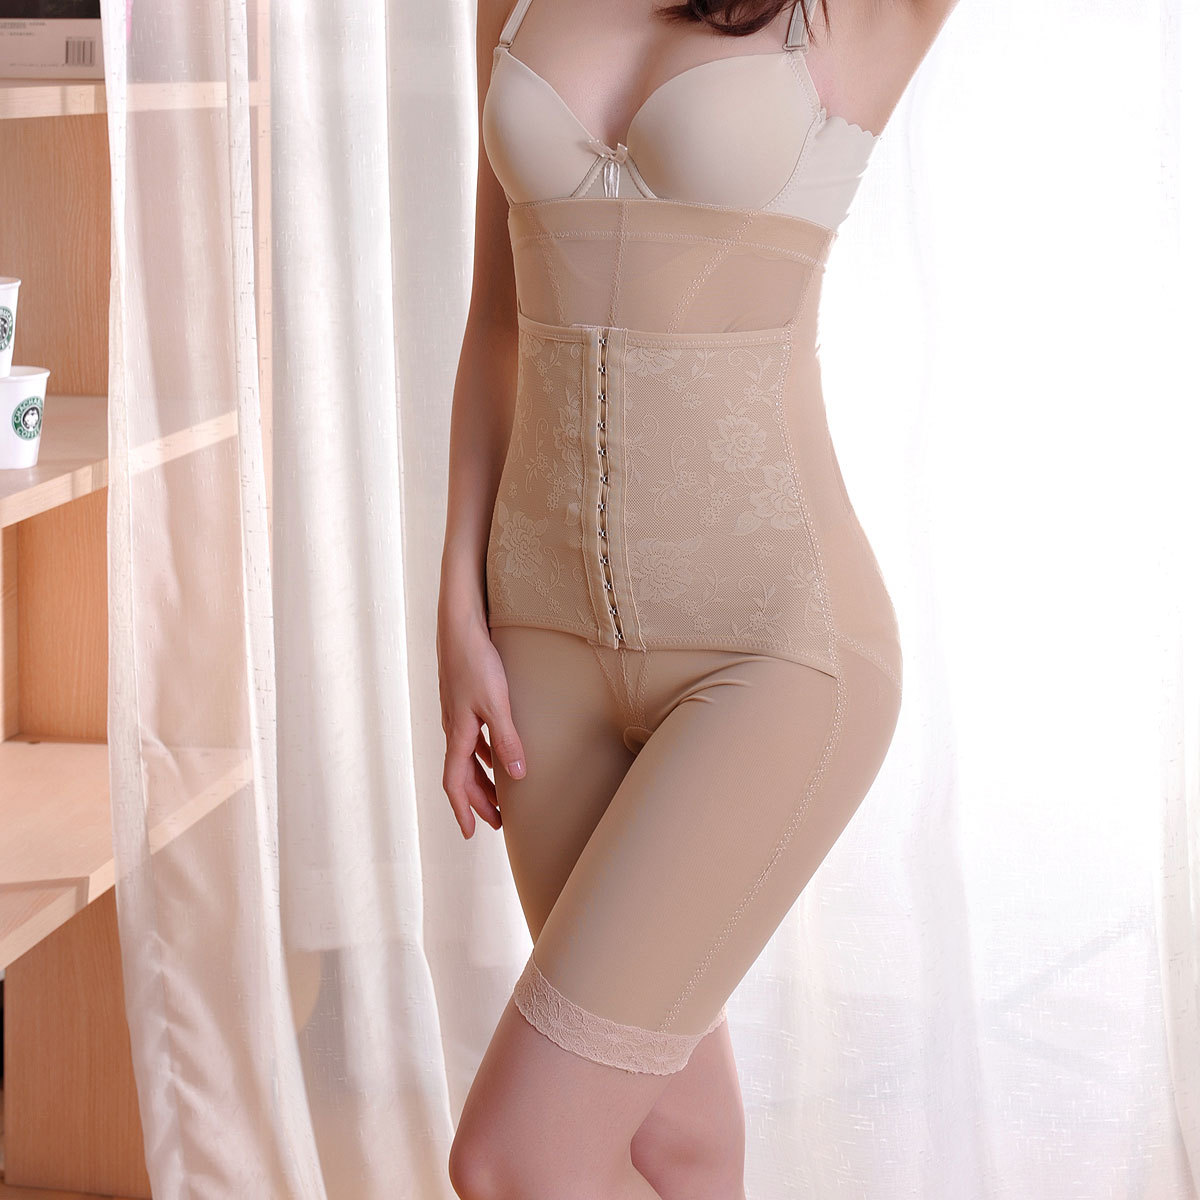 3 front button elastic super-elevation waist abdomen drawing pants butt-lifting body shaping pants corset for slimming